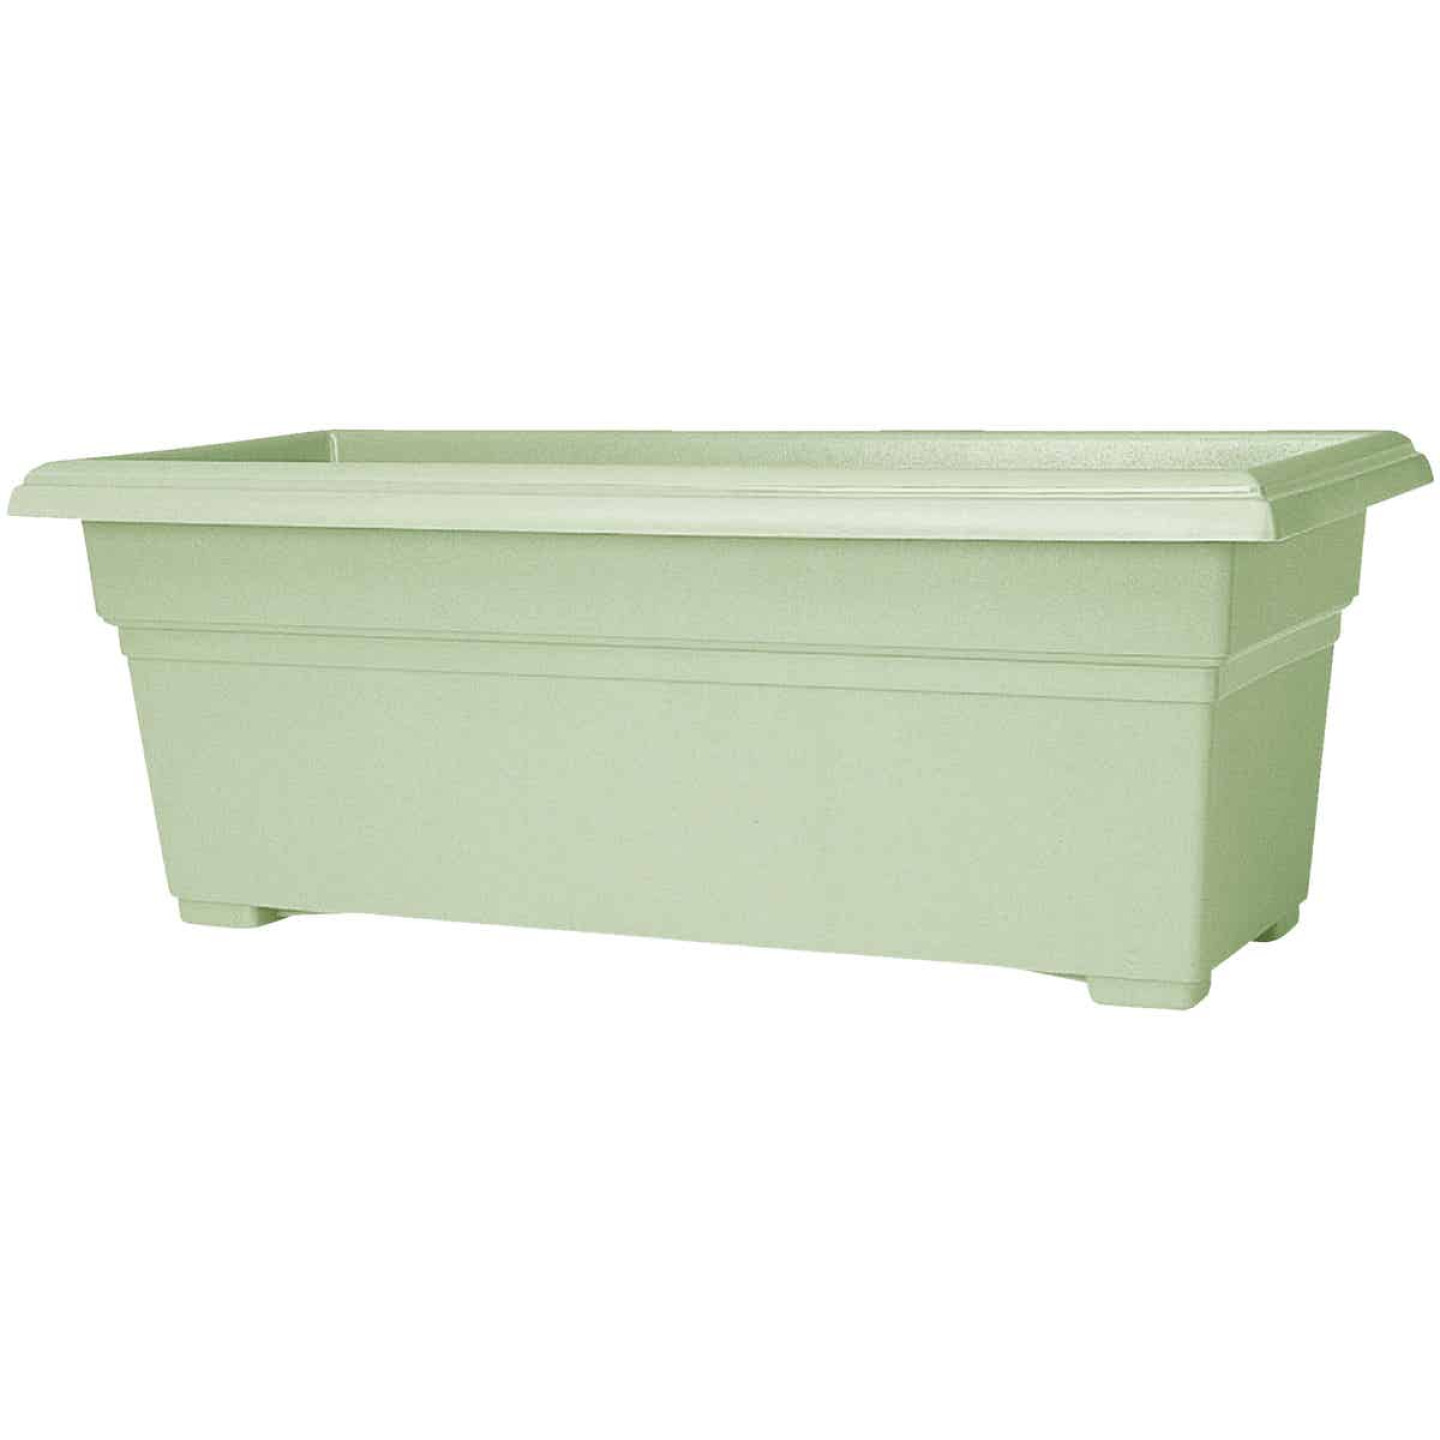 Novelty Countryside 24 In. Plastic Sage Flower Box Planter Image 1